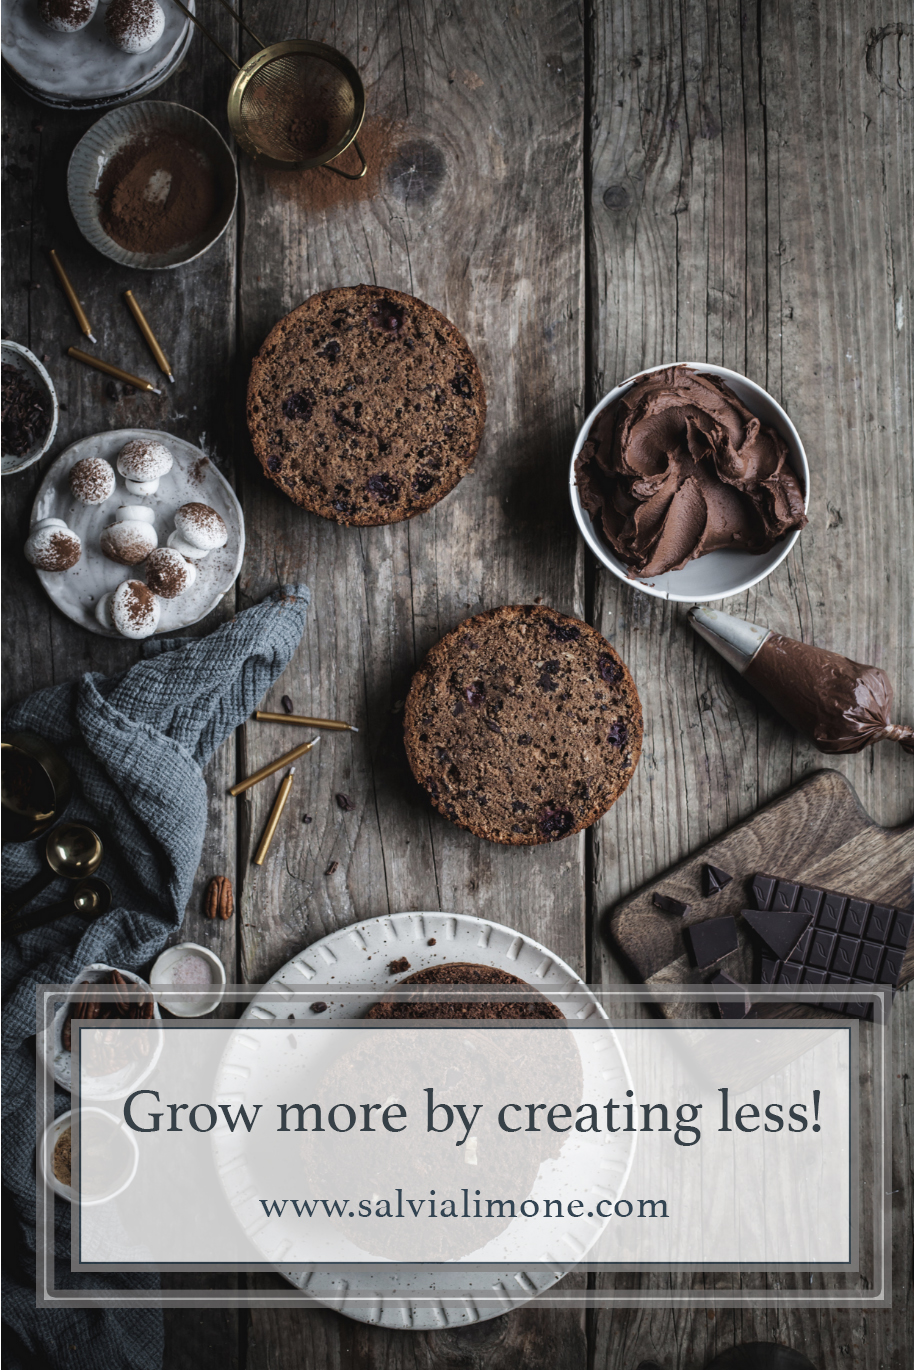 Grow more by creating less! #instagram #growyourfeed